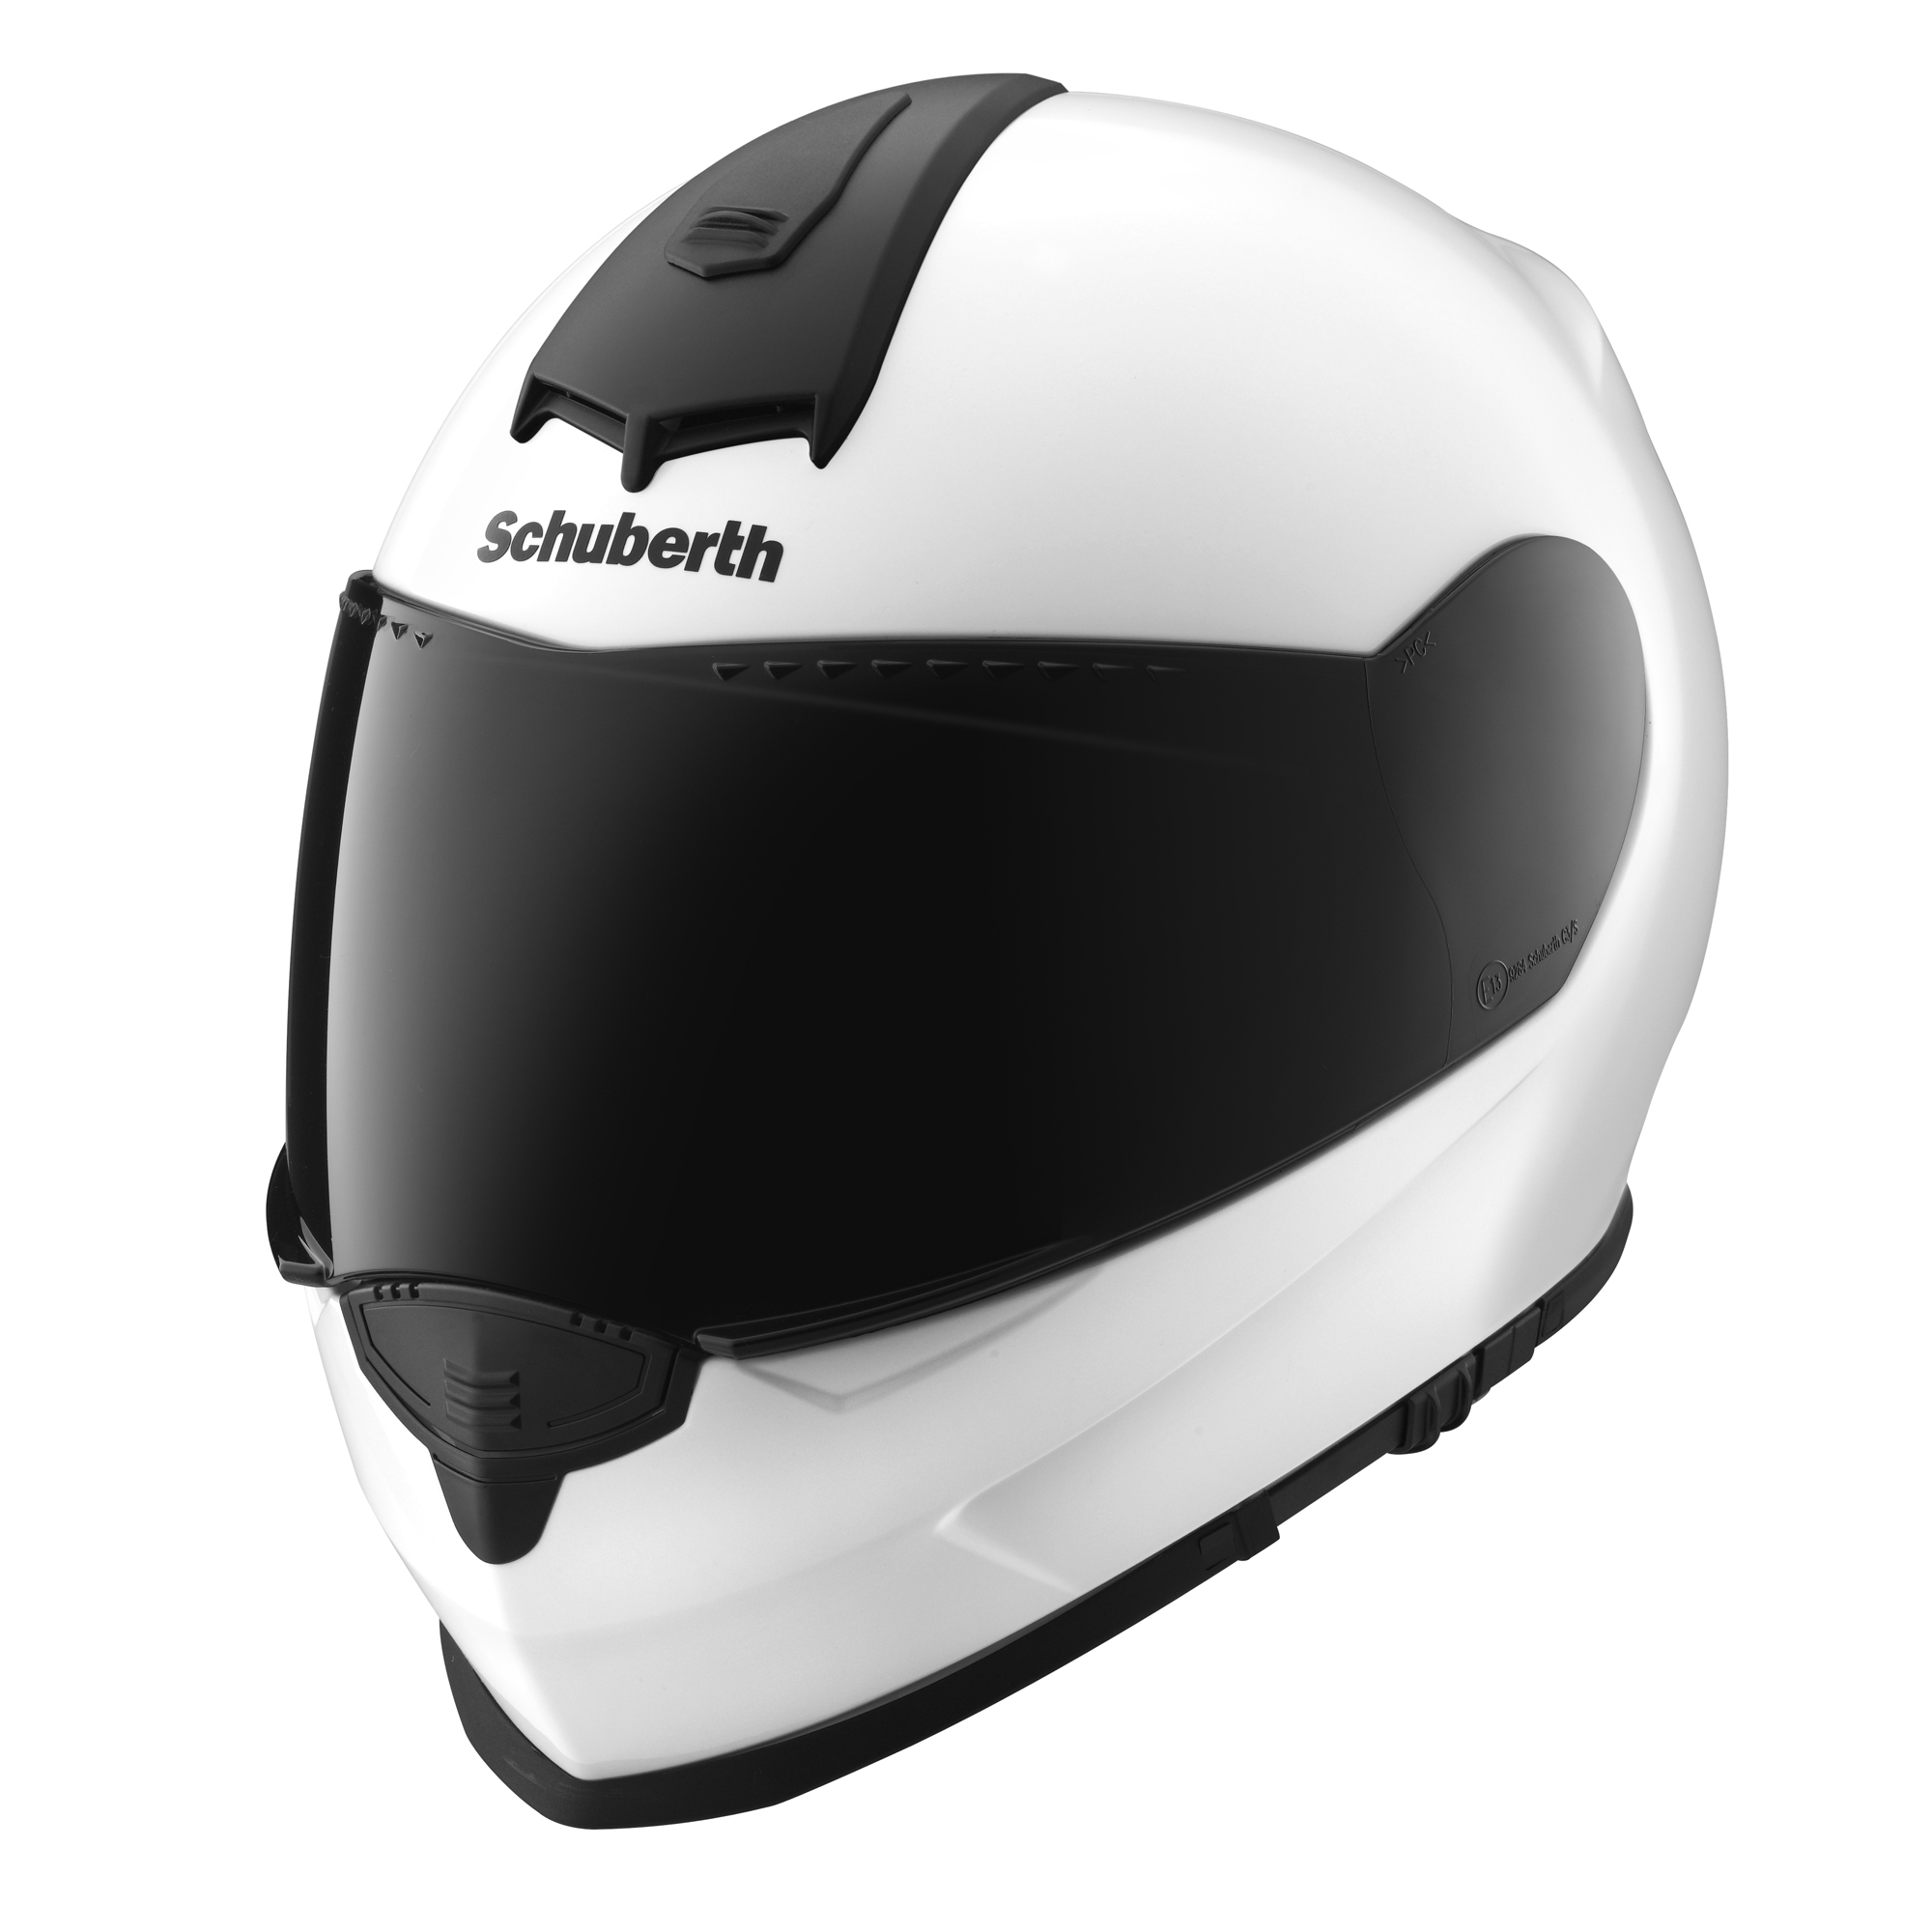 Schuberth S2 Review >> Schuberth S2: a helmet for everyone | Visordown